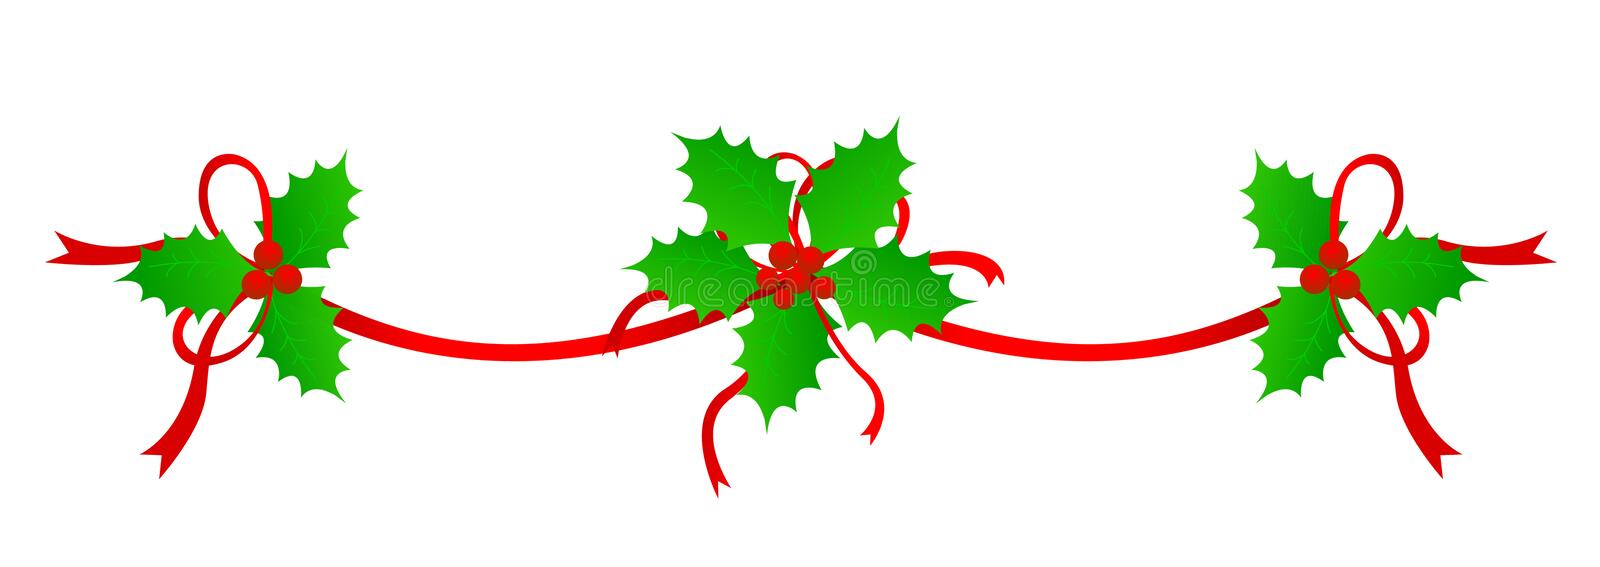 Christmas Border / divider stock vector. Illustration of ...